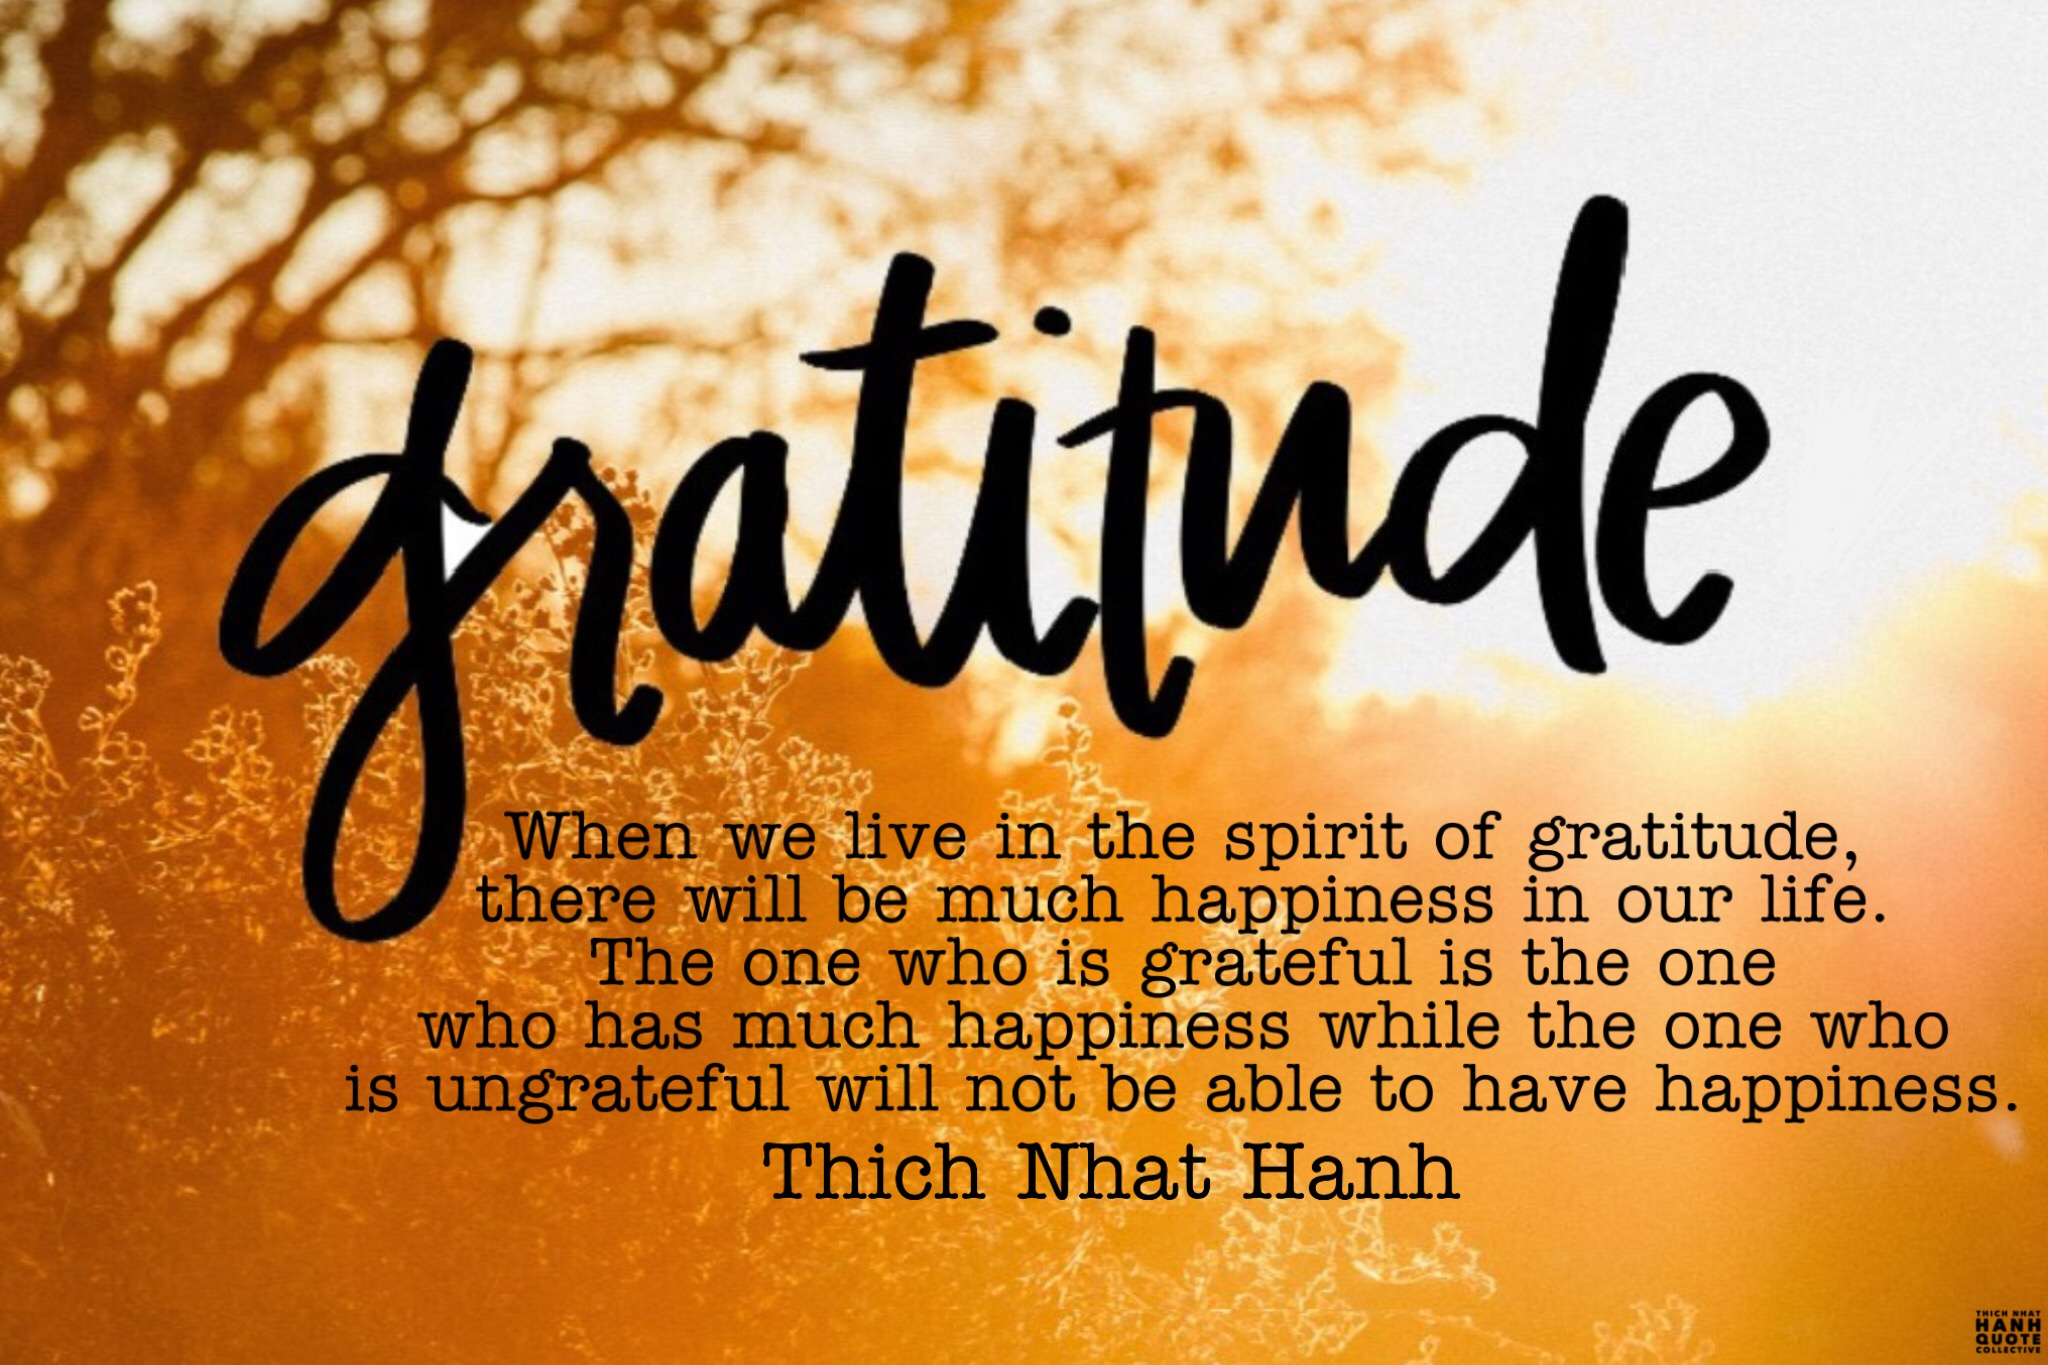 Gratitude – Thich Nhat Hanh   Thich Nhat Hanh Quote Collectiveॐ